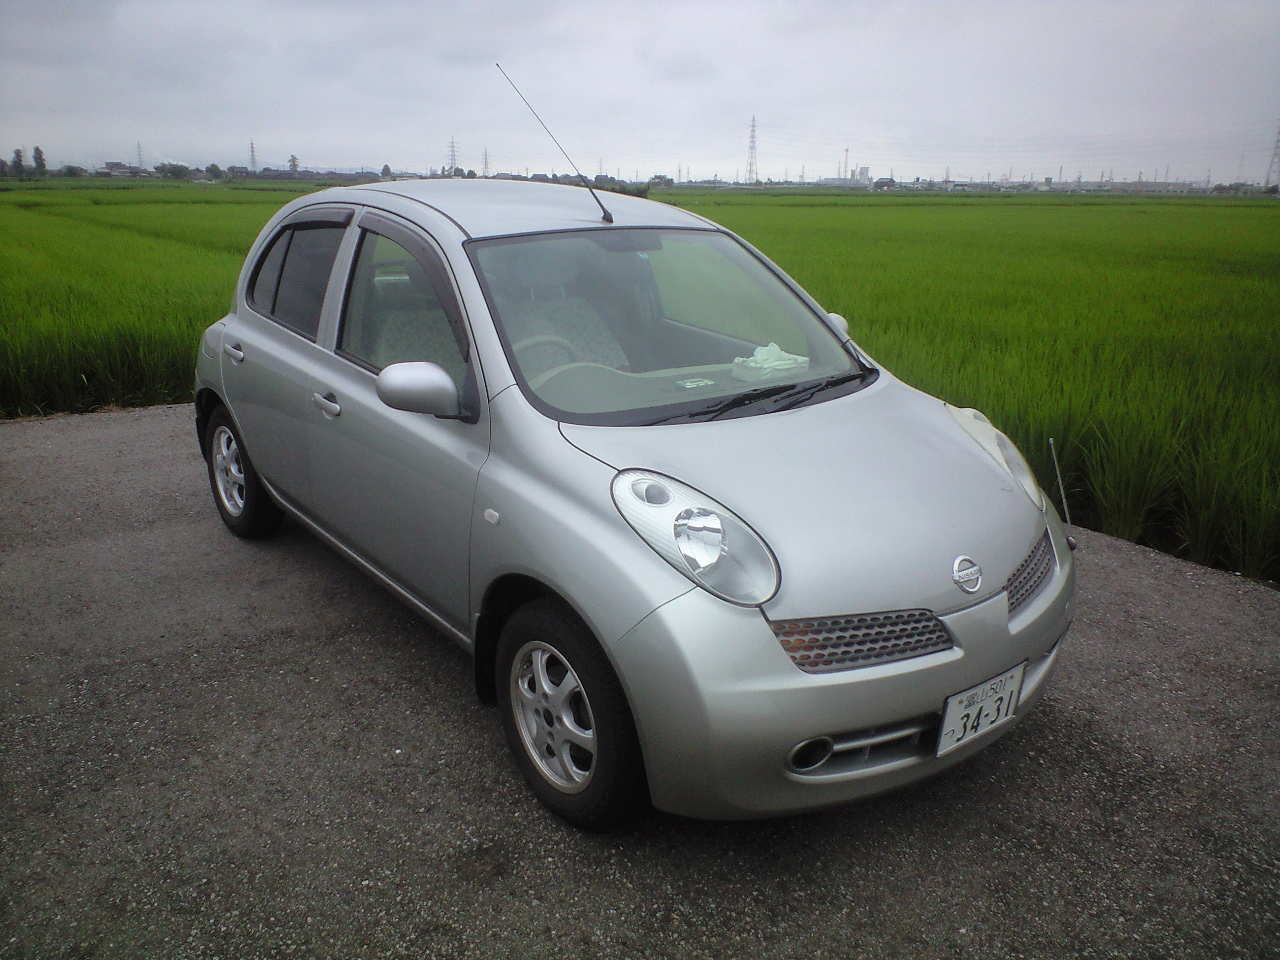 used 2005 nissan march photos 1300cc gasoline ff automatic for sale. Black Bedroom Furniture Sets. Home Design Ideas